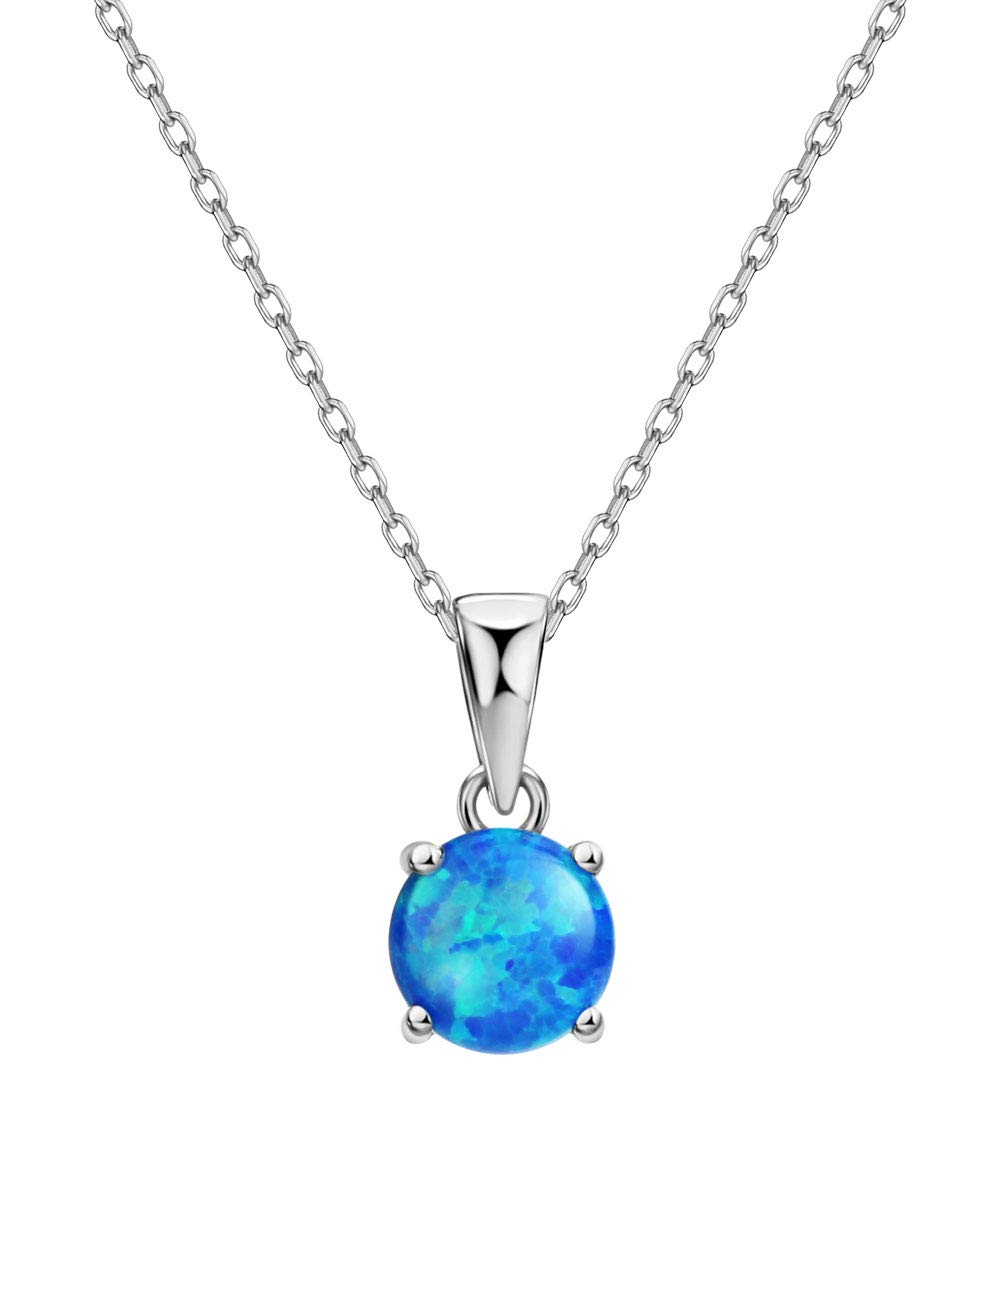 Mints Blue Opal Pendant Necklace 4 Prongs Setting Solitaire Fine Jewelry for Women